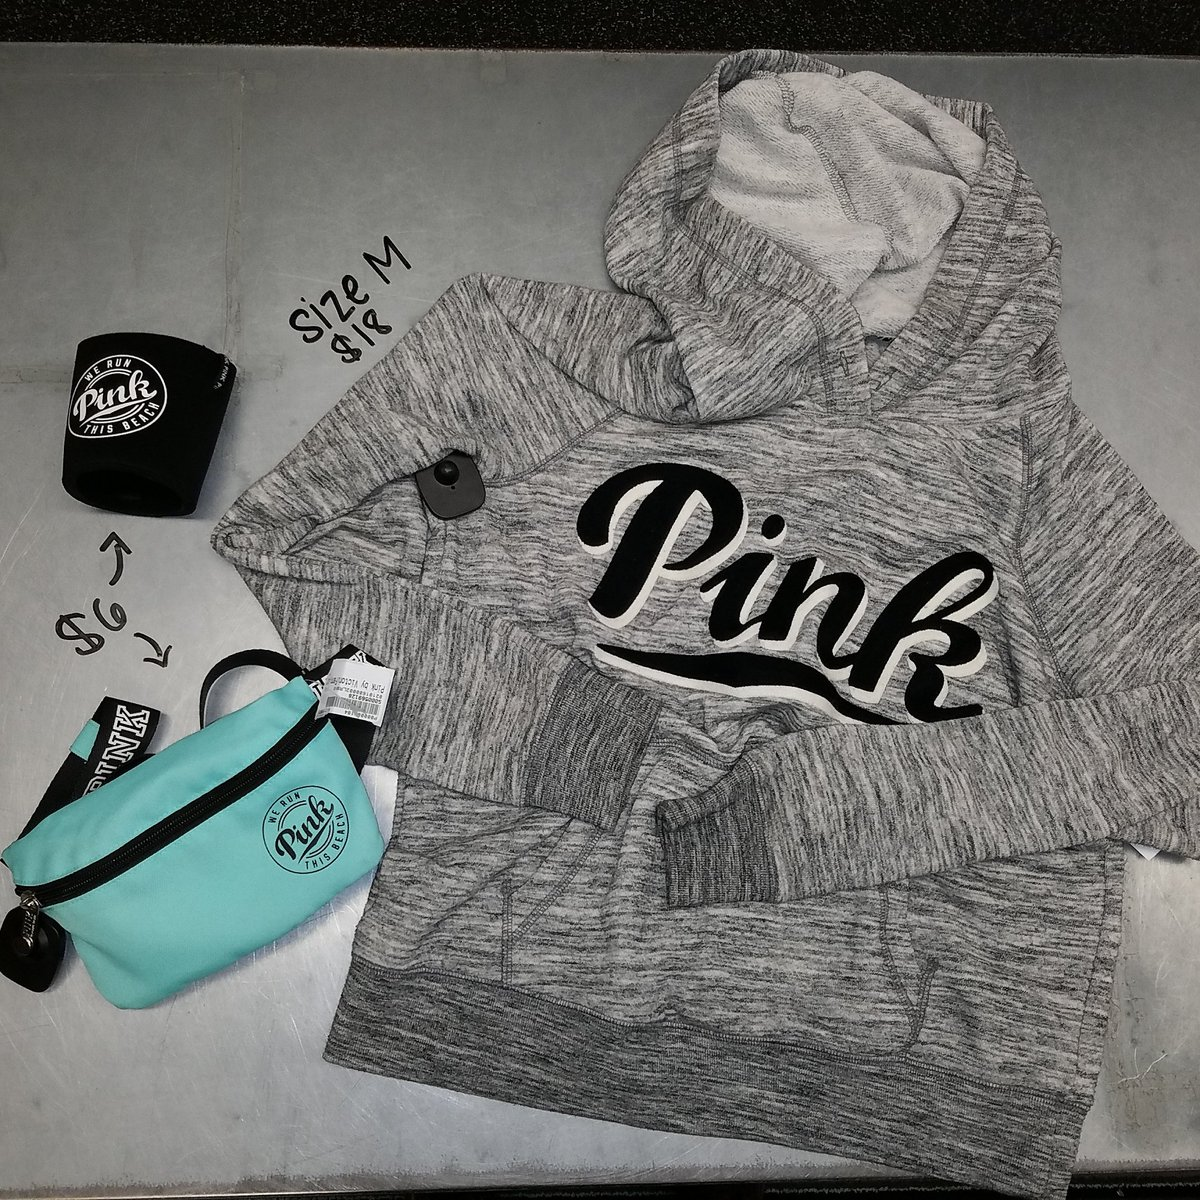 There's just came in and we are obsessing over them!#pink #platosclosetsarasota pic.twitter.com/97EQjCWKiY